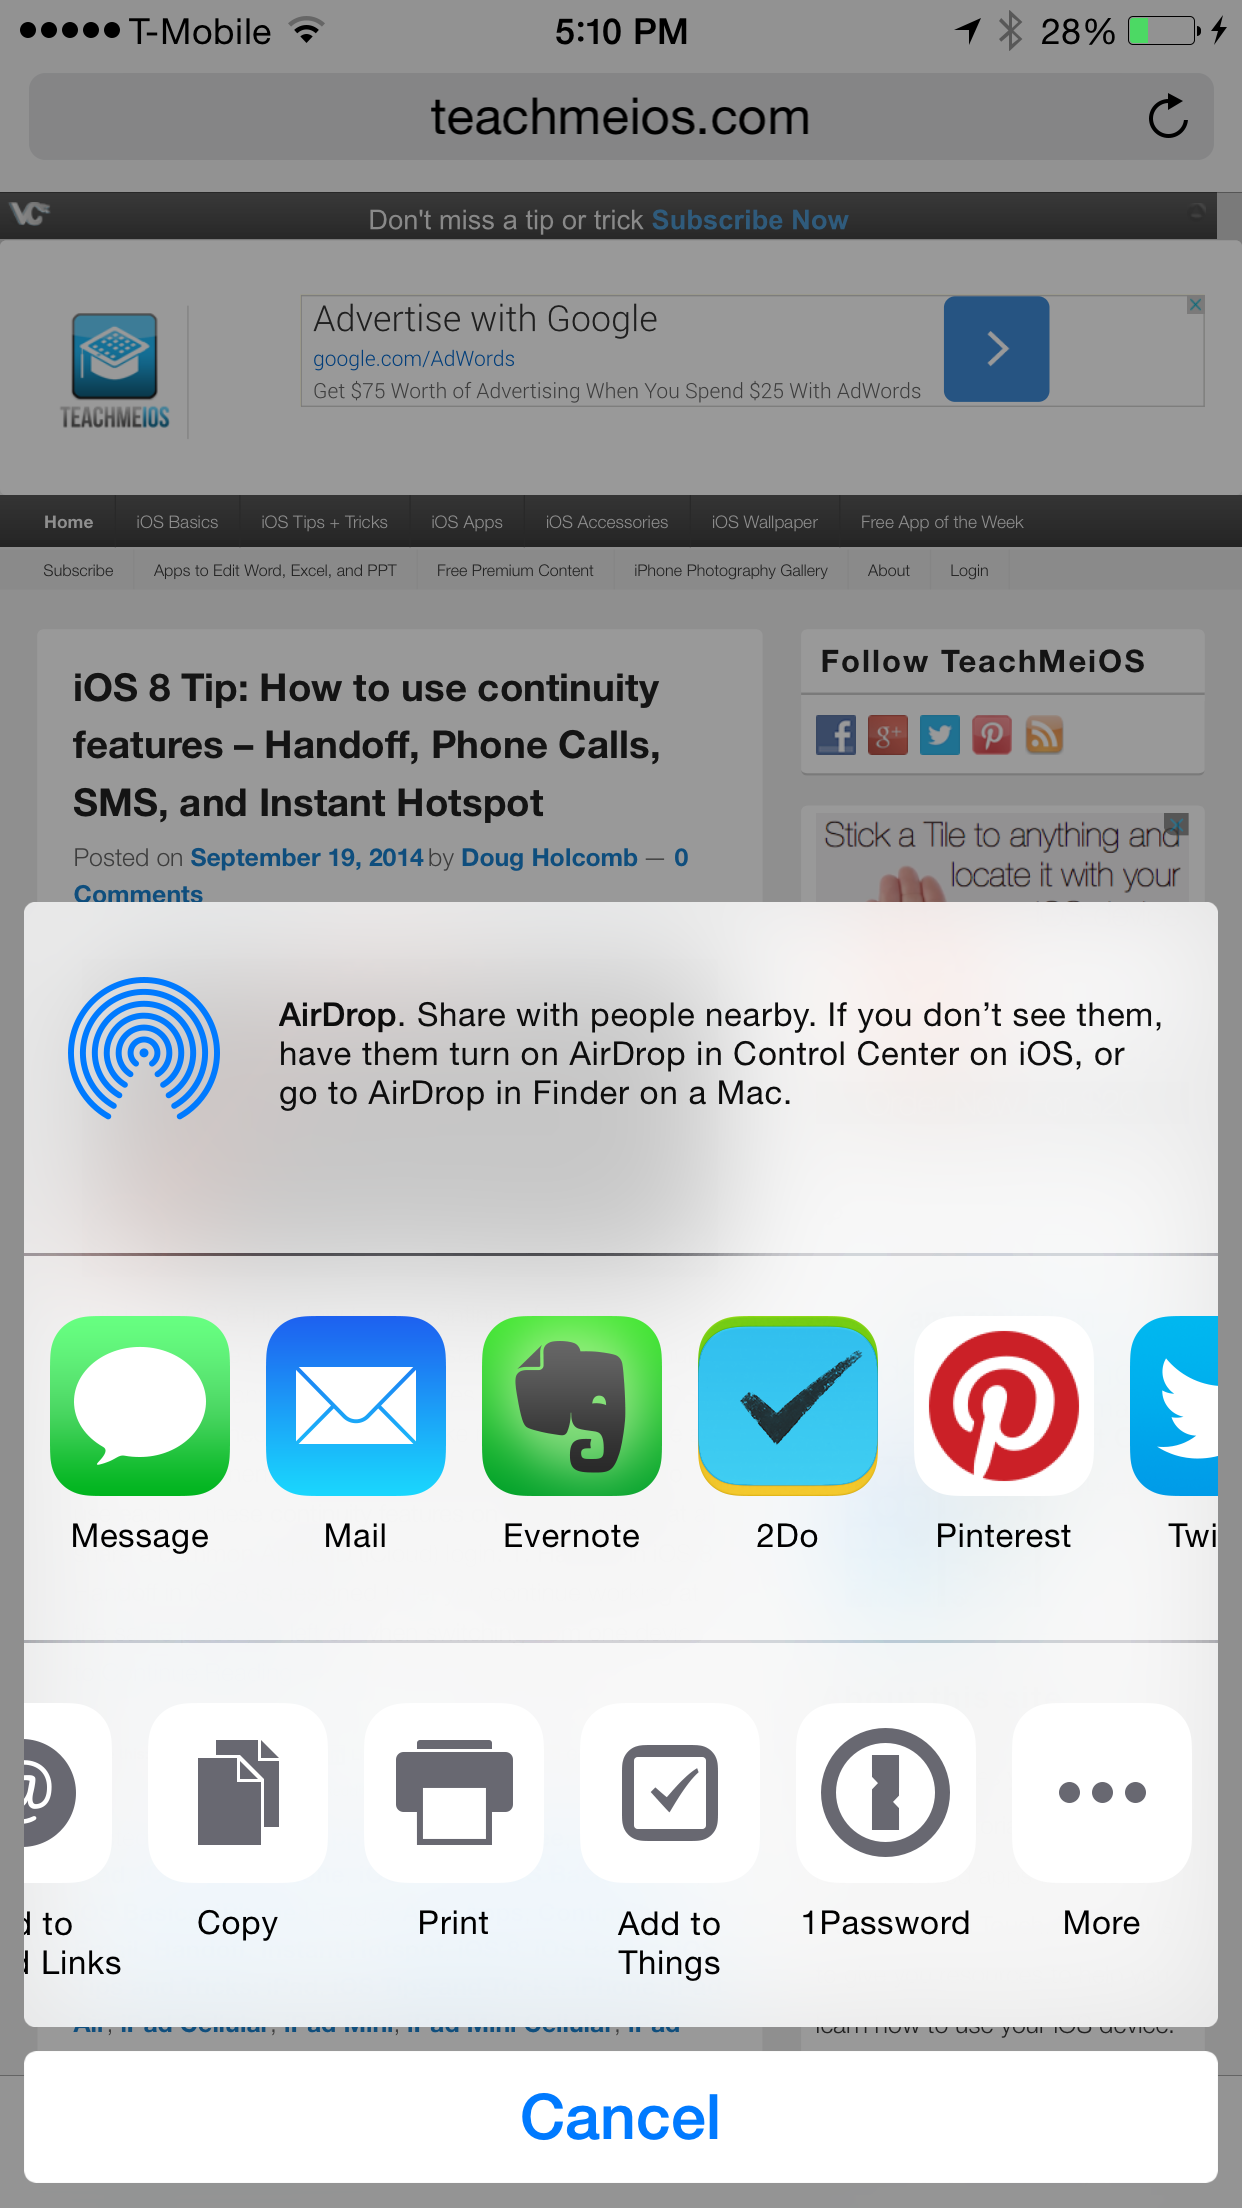 Ios 8 Tip: How To Use Extensions In Safari On Iphone, Ipad, And